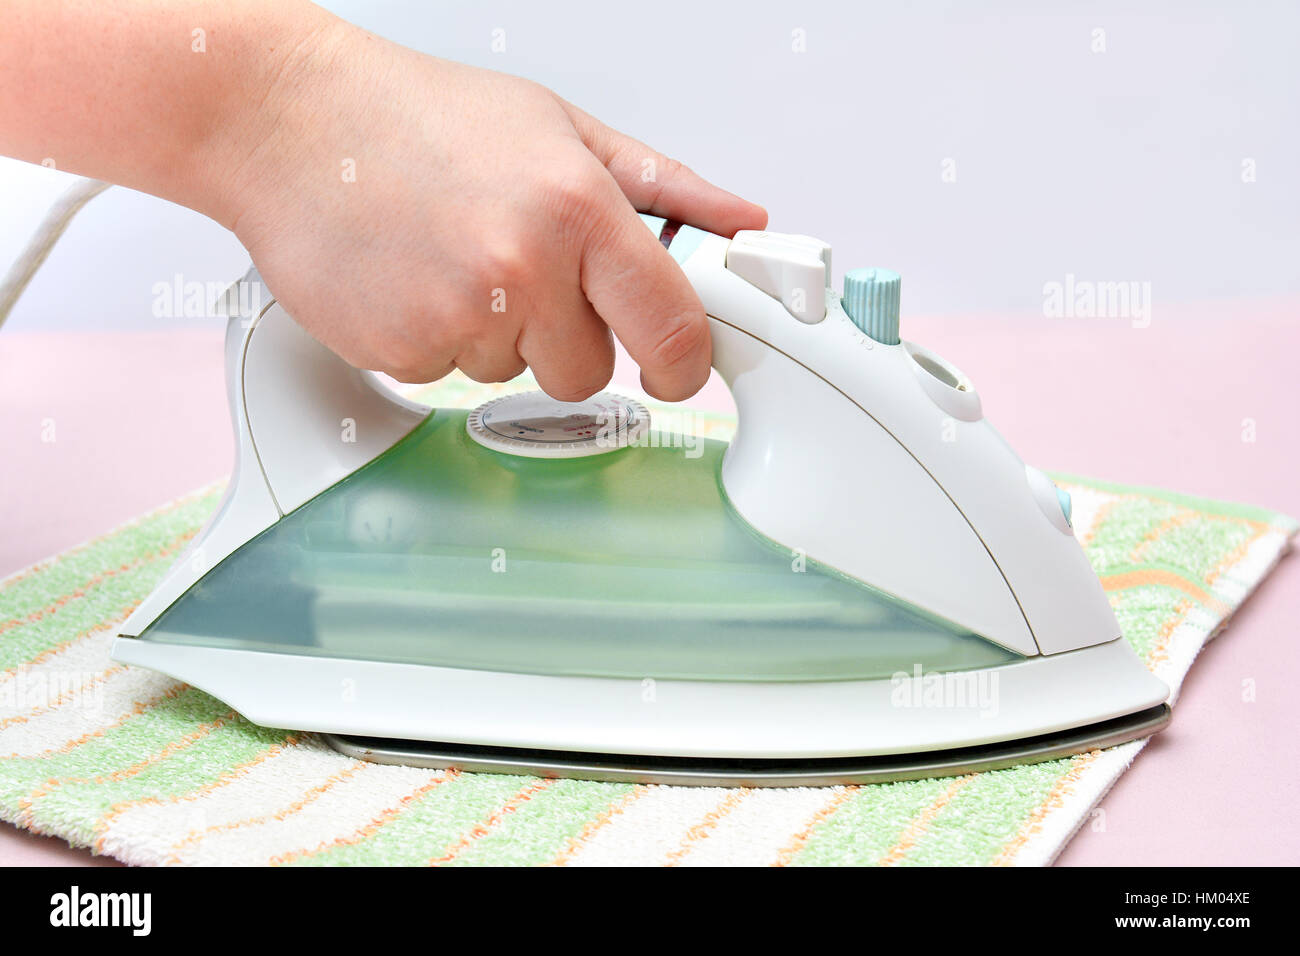 Iron in the hand. Ironing - Stock Image